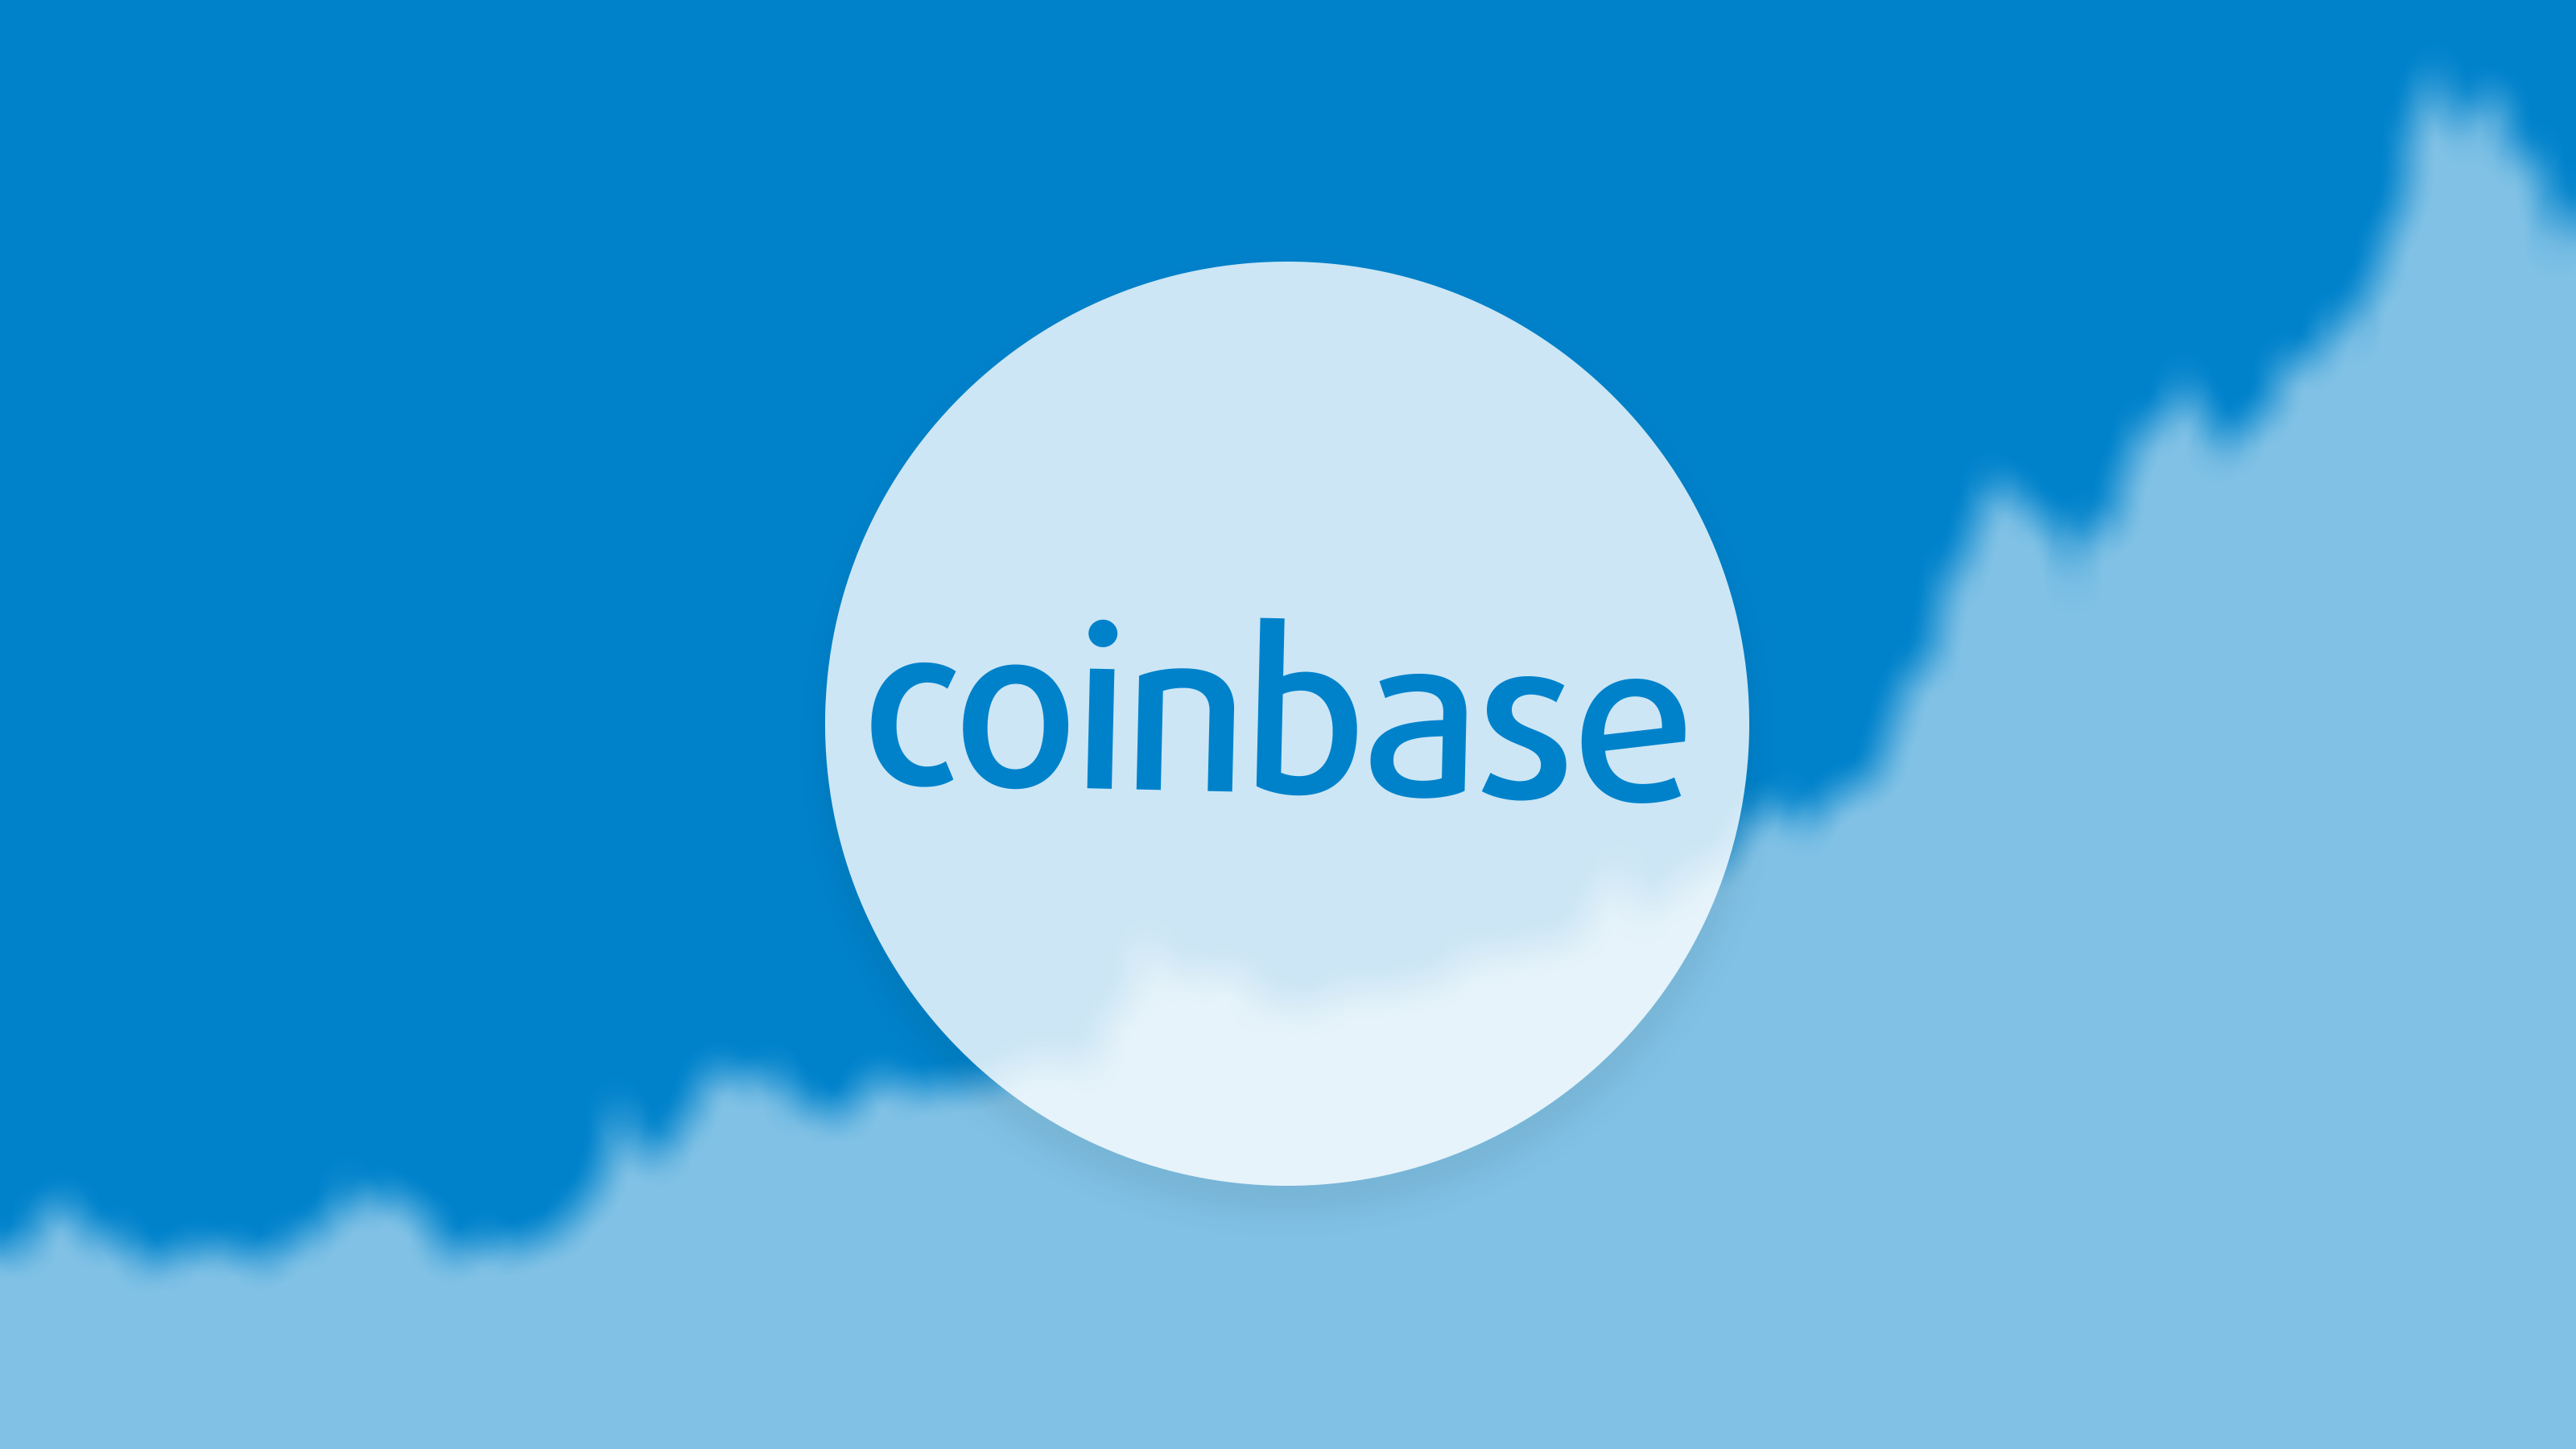 Coinbase Cryptocurrency Exchange Valued At $1 Billion